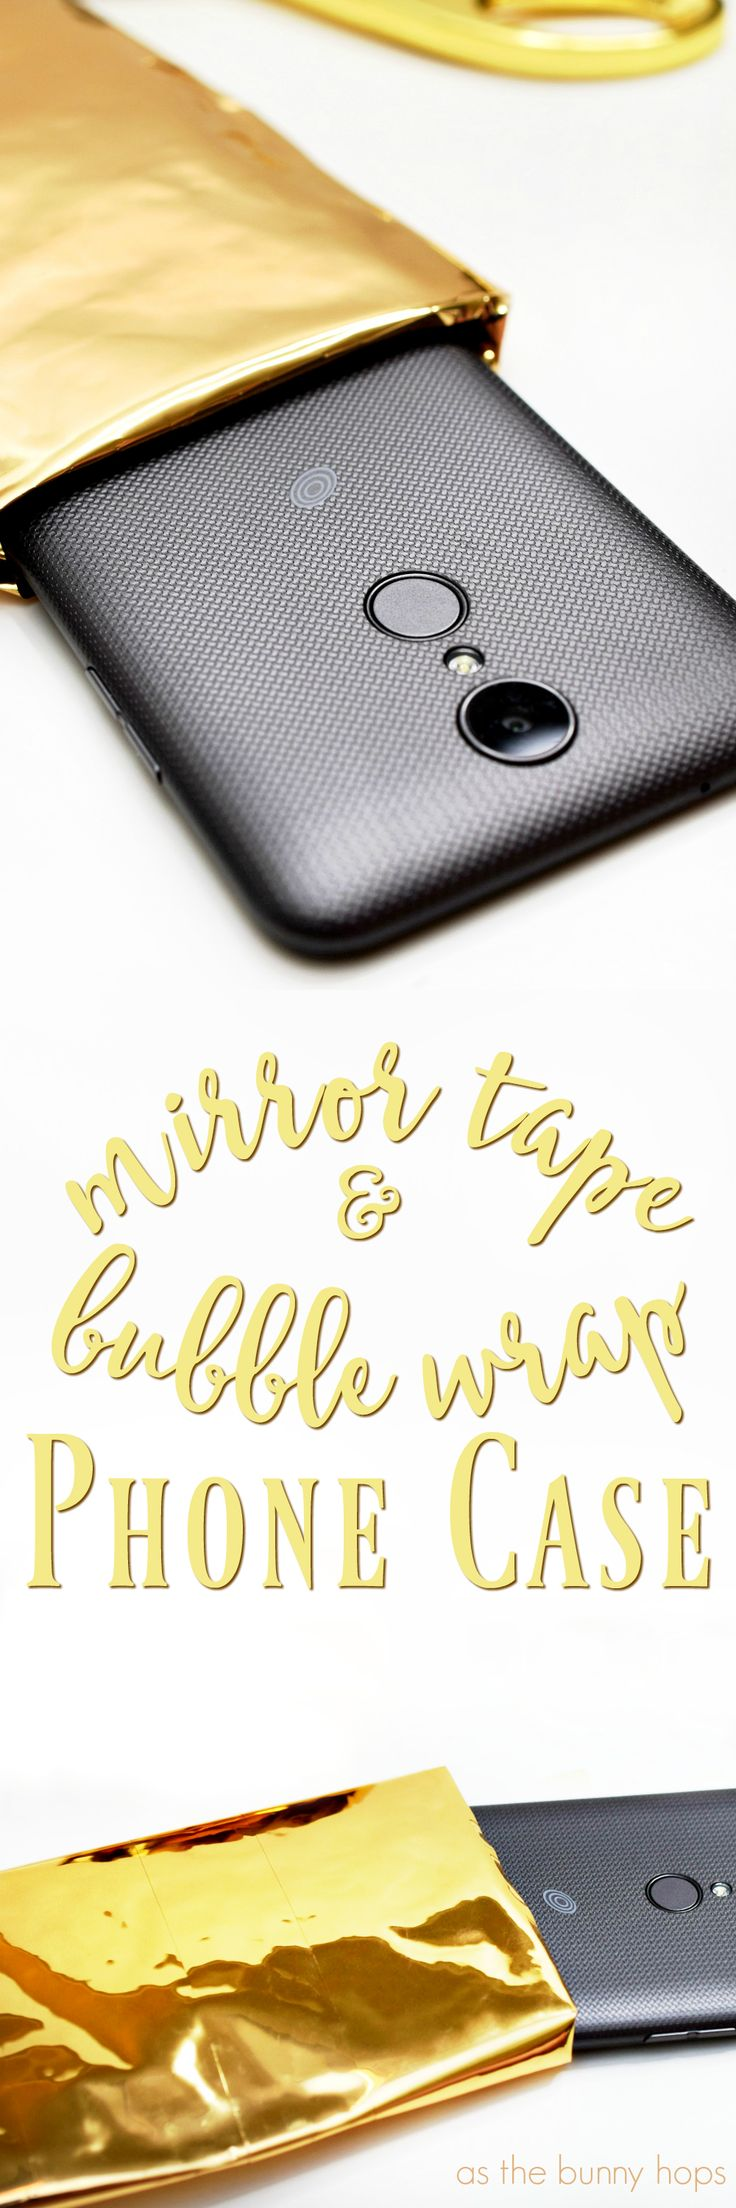 Need an easy way to protect your phone? Try this DIY Mirror Tape and Bubble Wrap phone case! #SummerIsForSavings #WFM4 AD